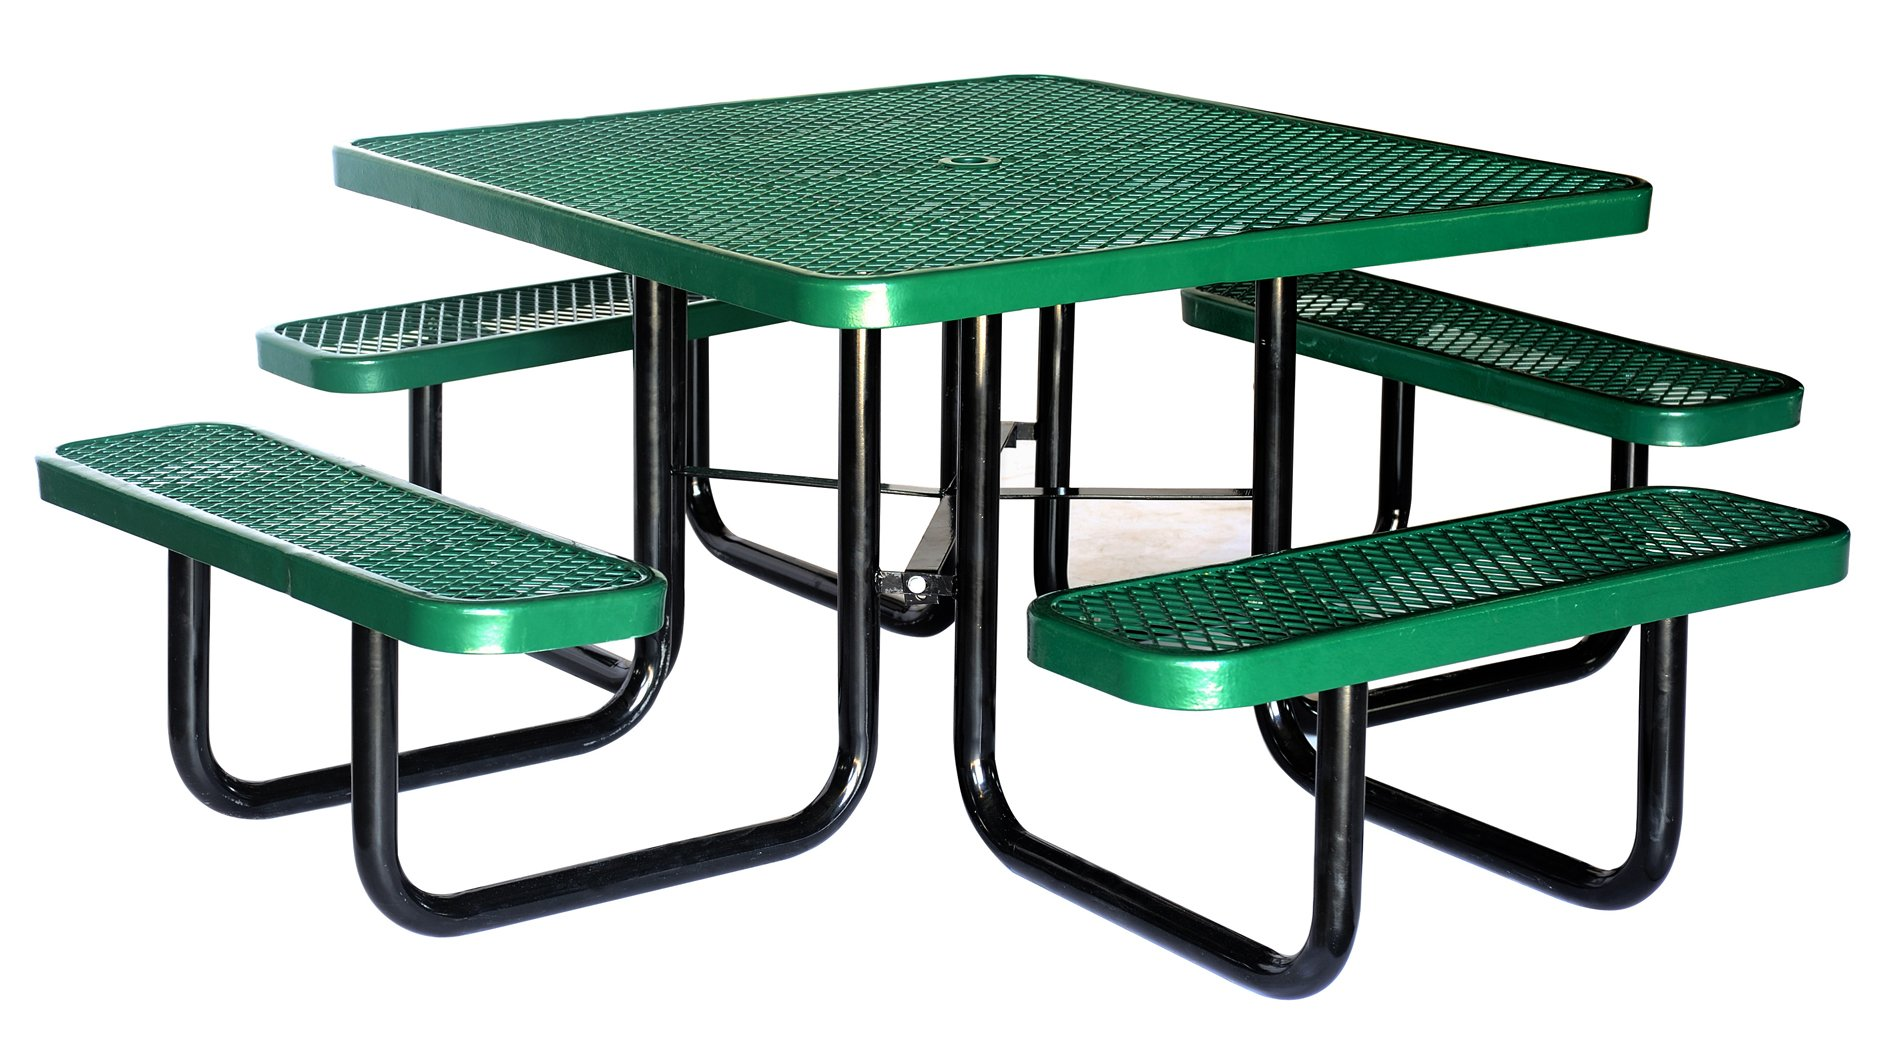 Lifeyard 46'' Expanded Square Metal Picnic Table and Benches Steel Frame for Commercial,Green